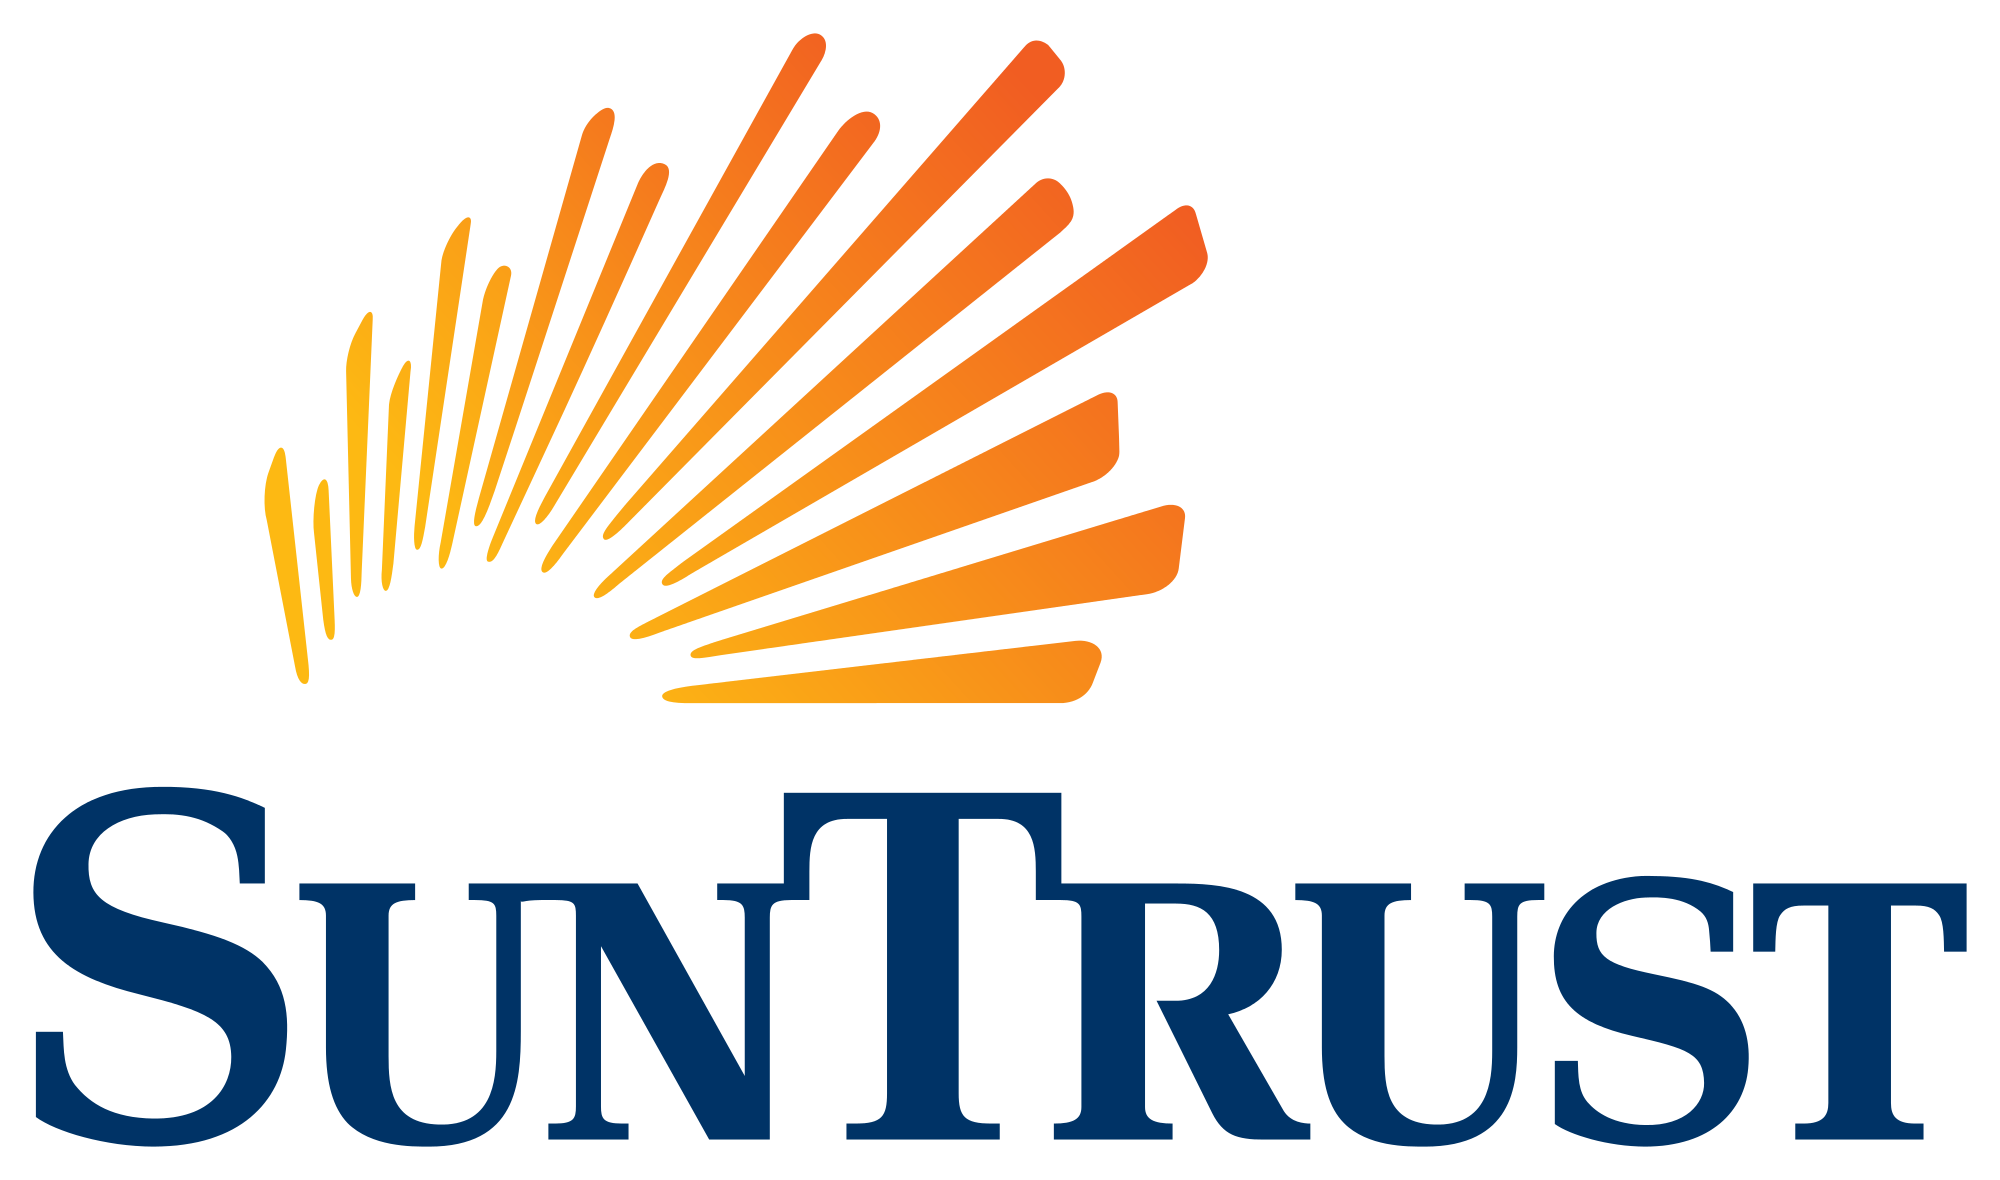 Suntrust logo. Golden Hope